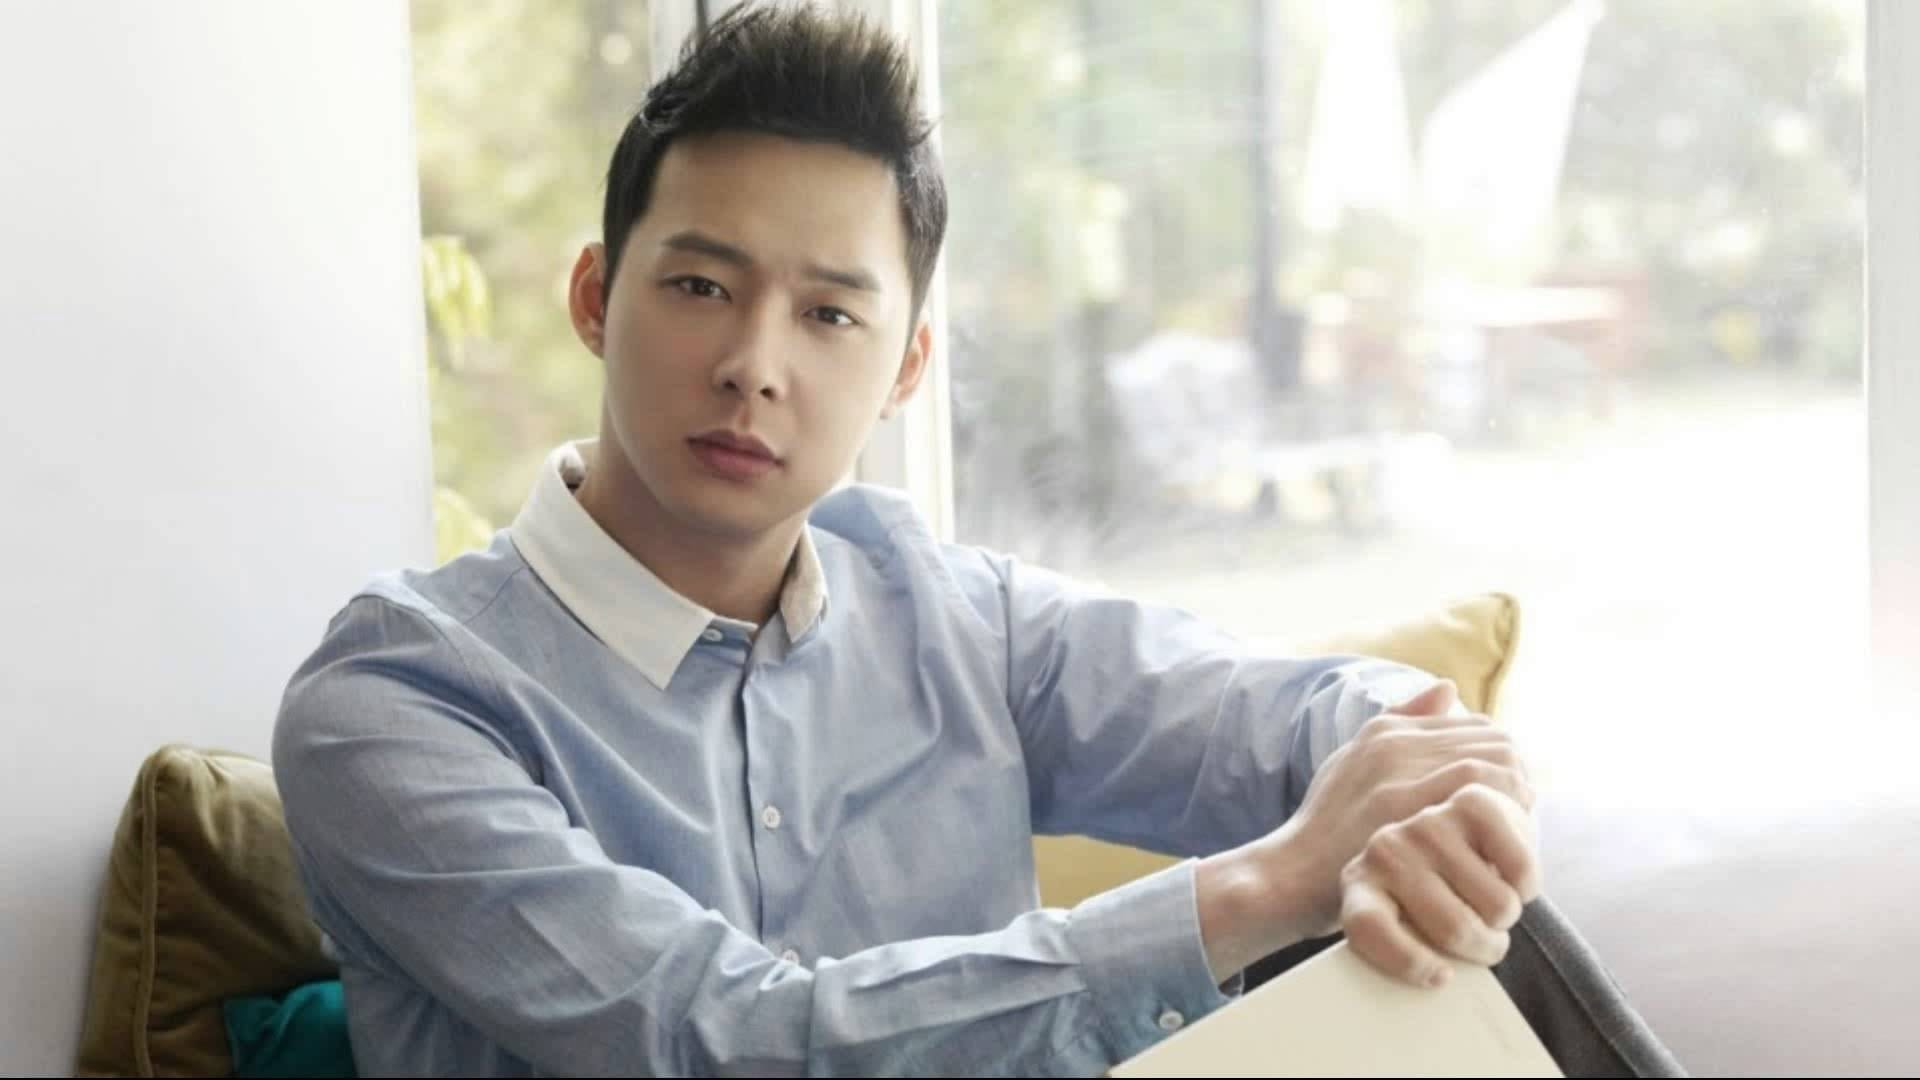 Breaking News: JYJ's Park Yoochun To Marry This Fall